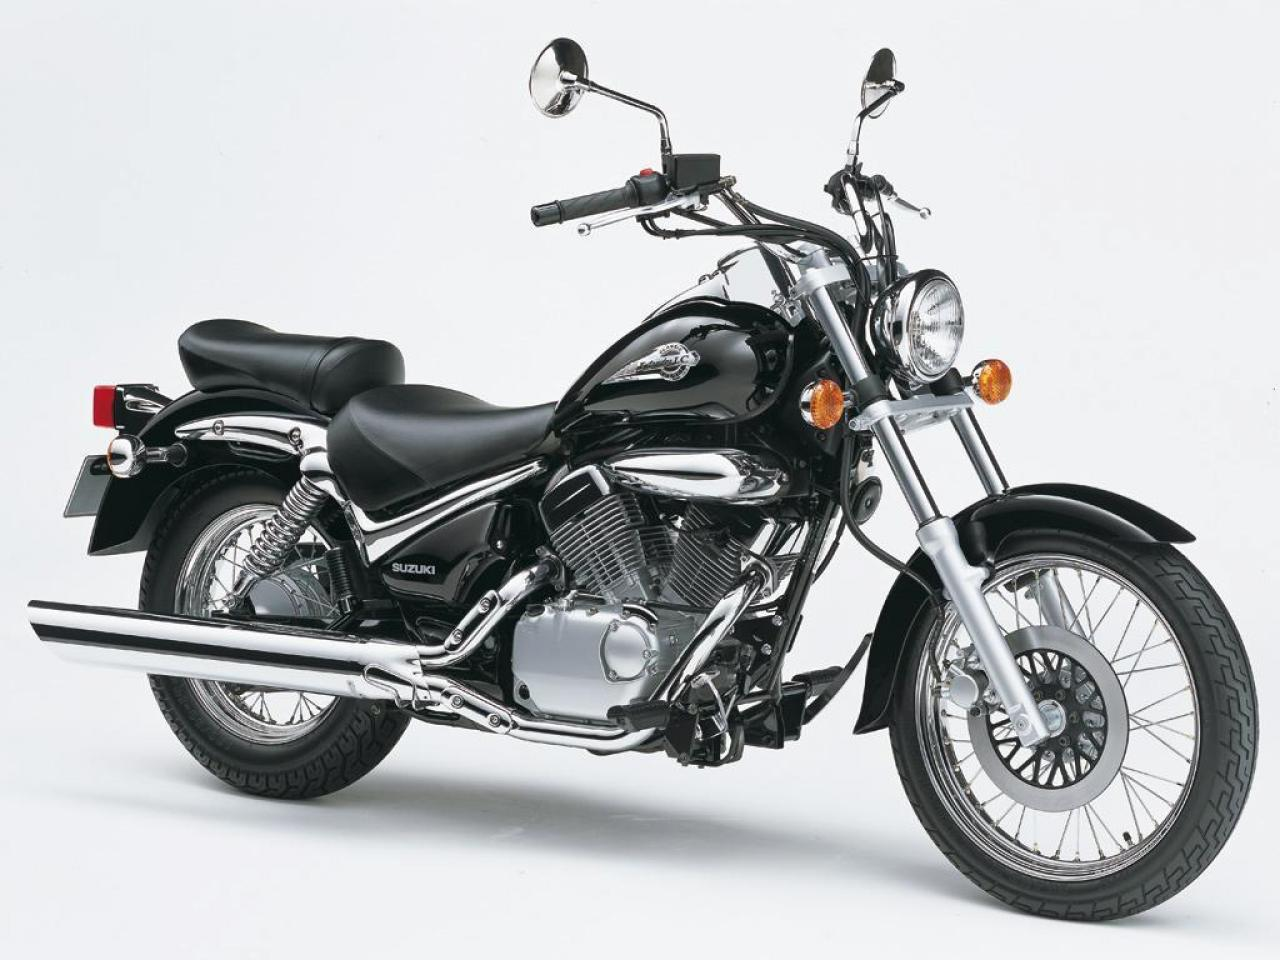 2000 suzuki intruder 125 moto zombdrive com. Black Bedroom Furniture Sets. Home Design Ideas